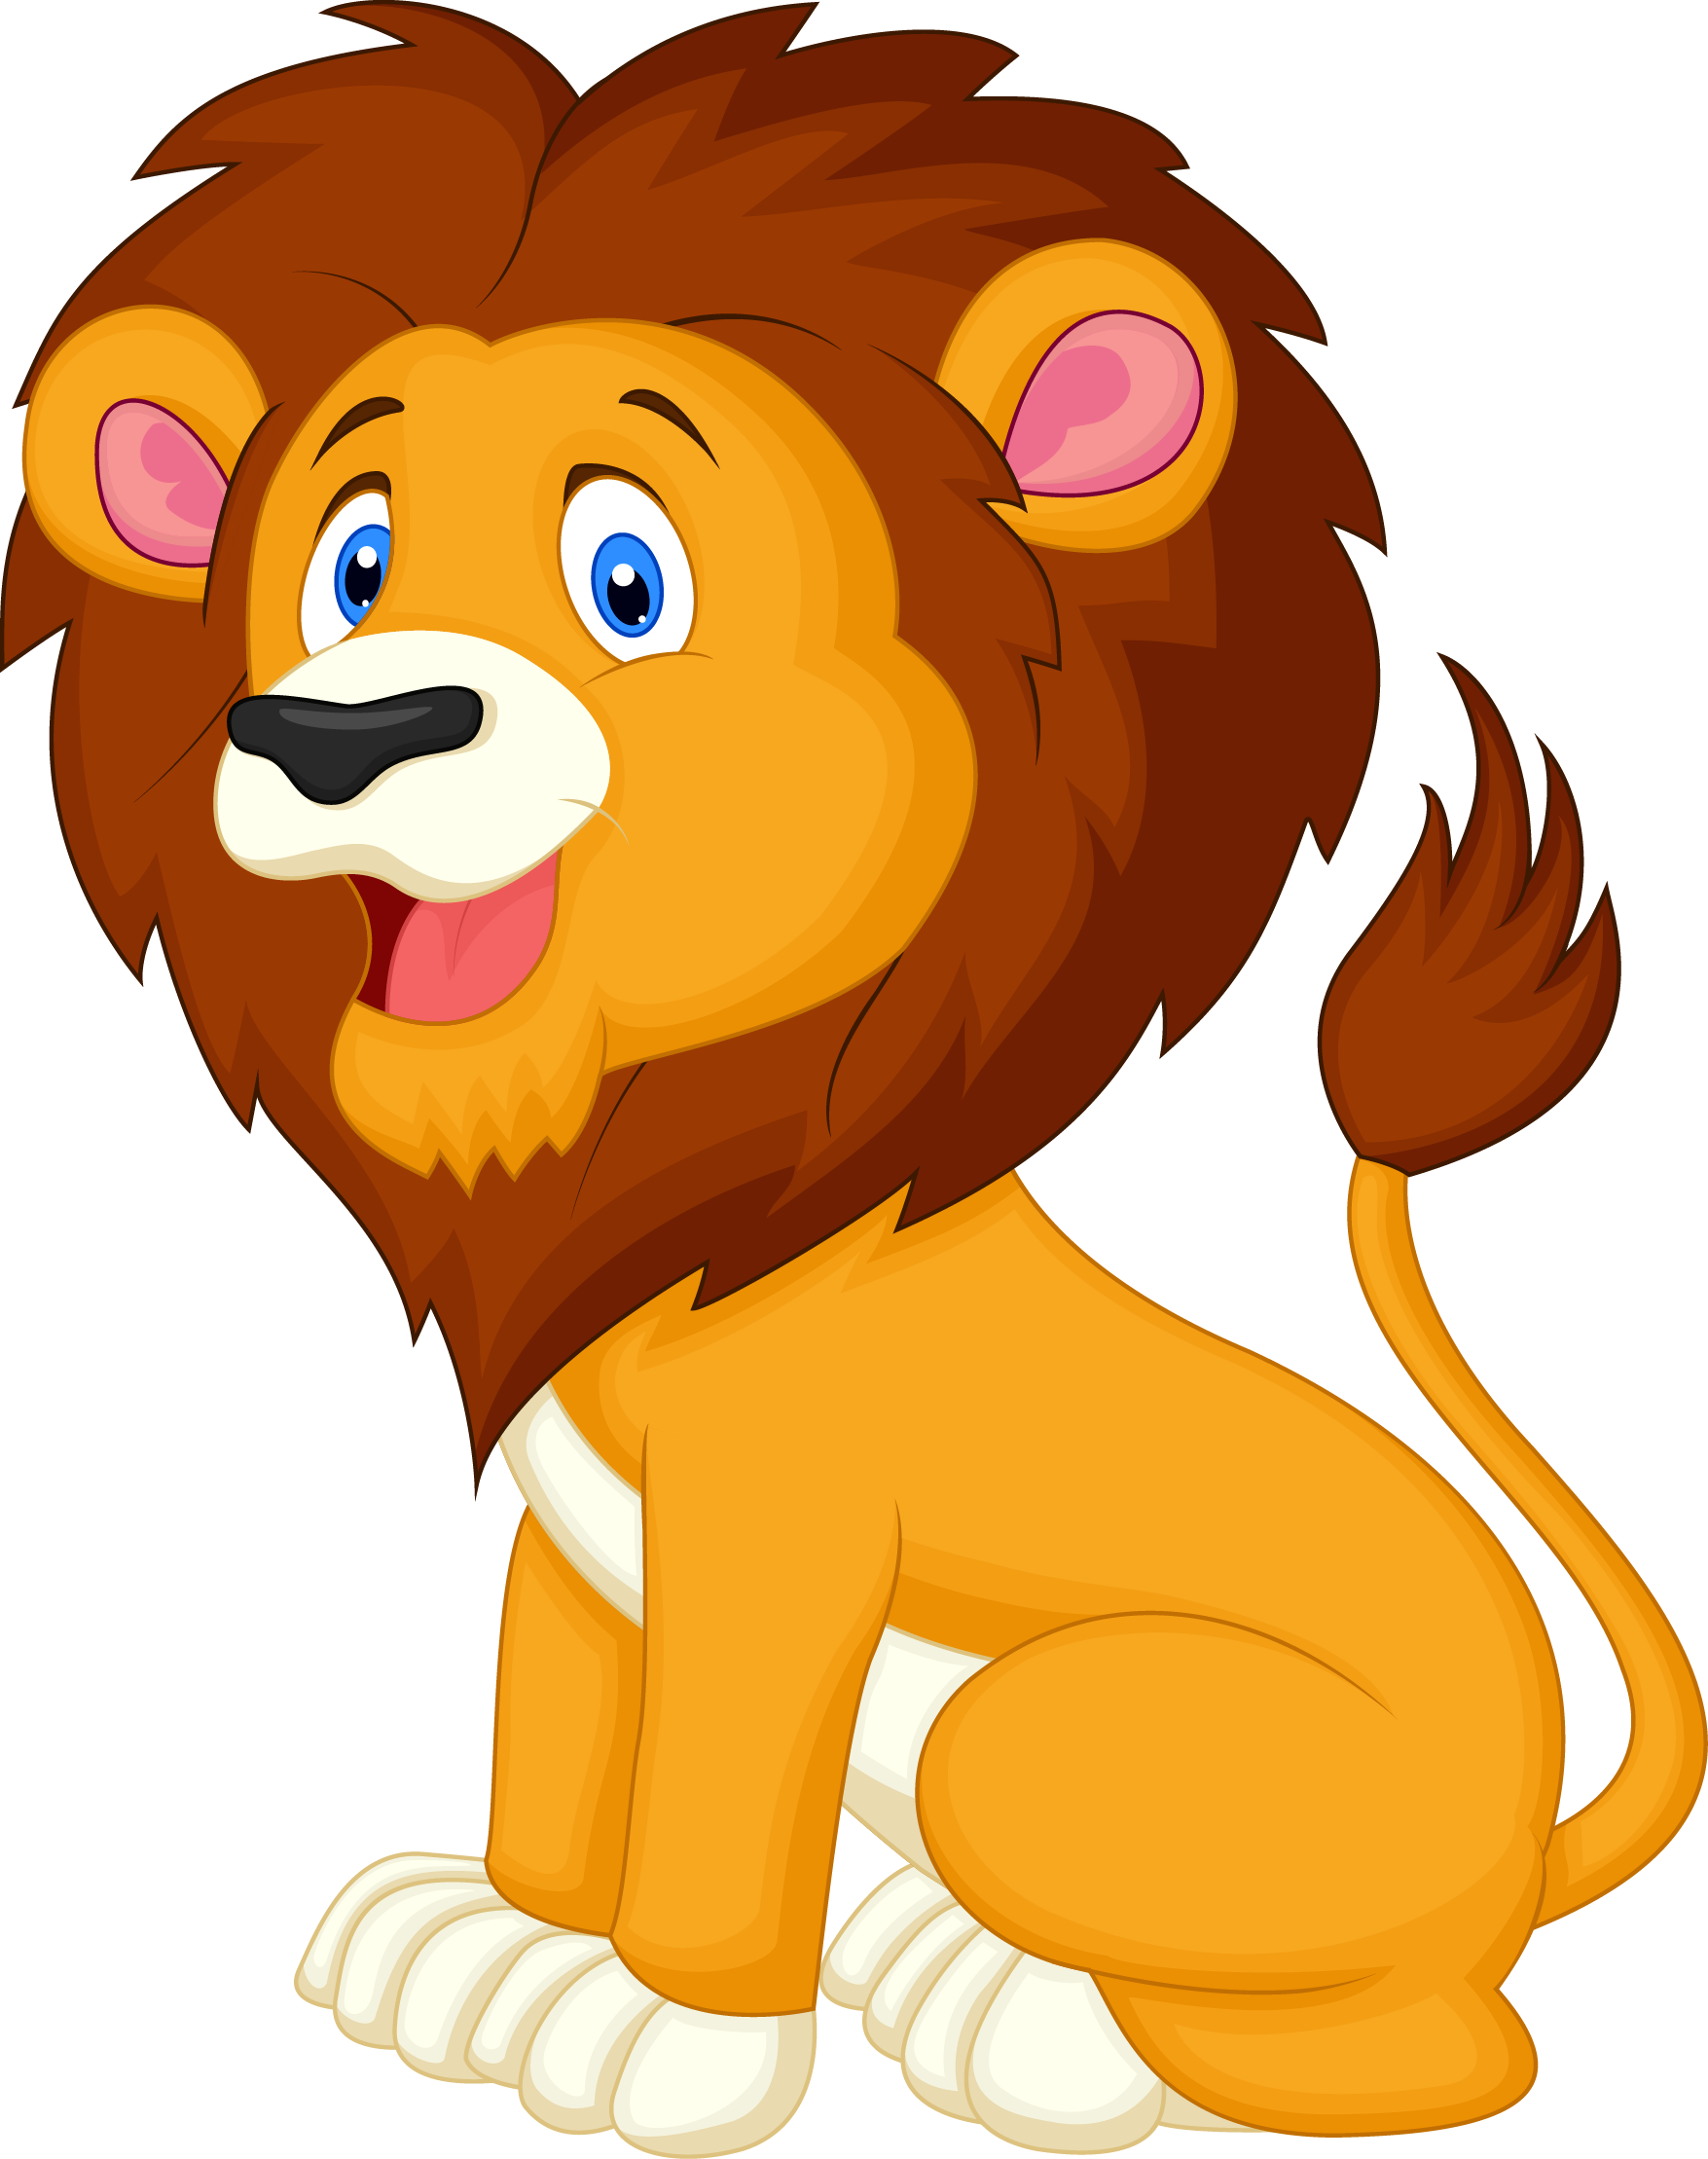 picture royalty free download For download free images. Lion clipart.